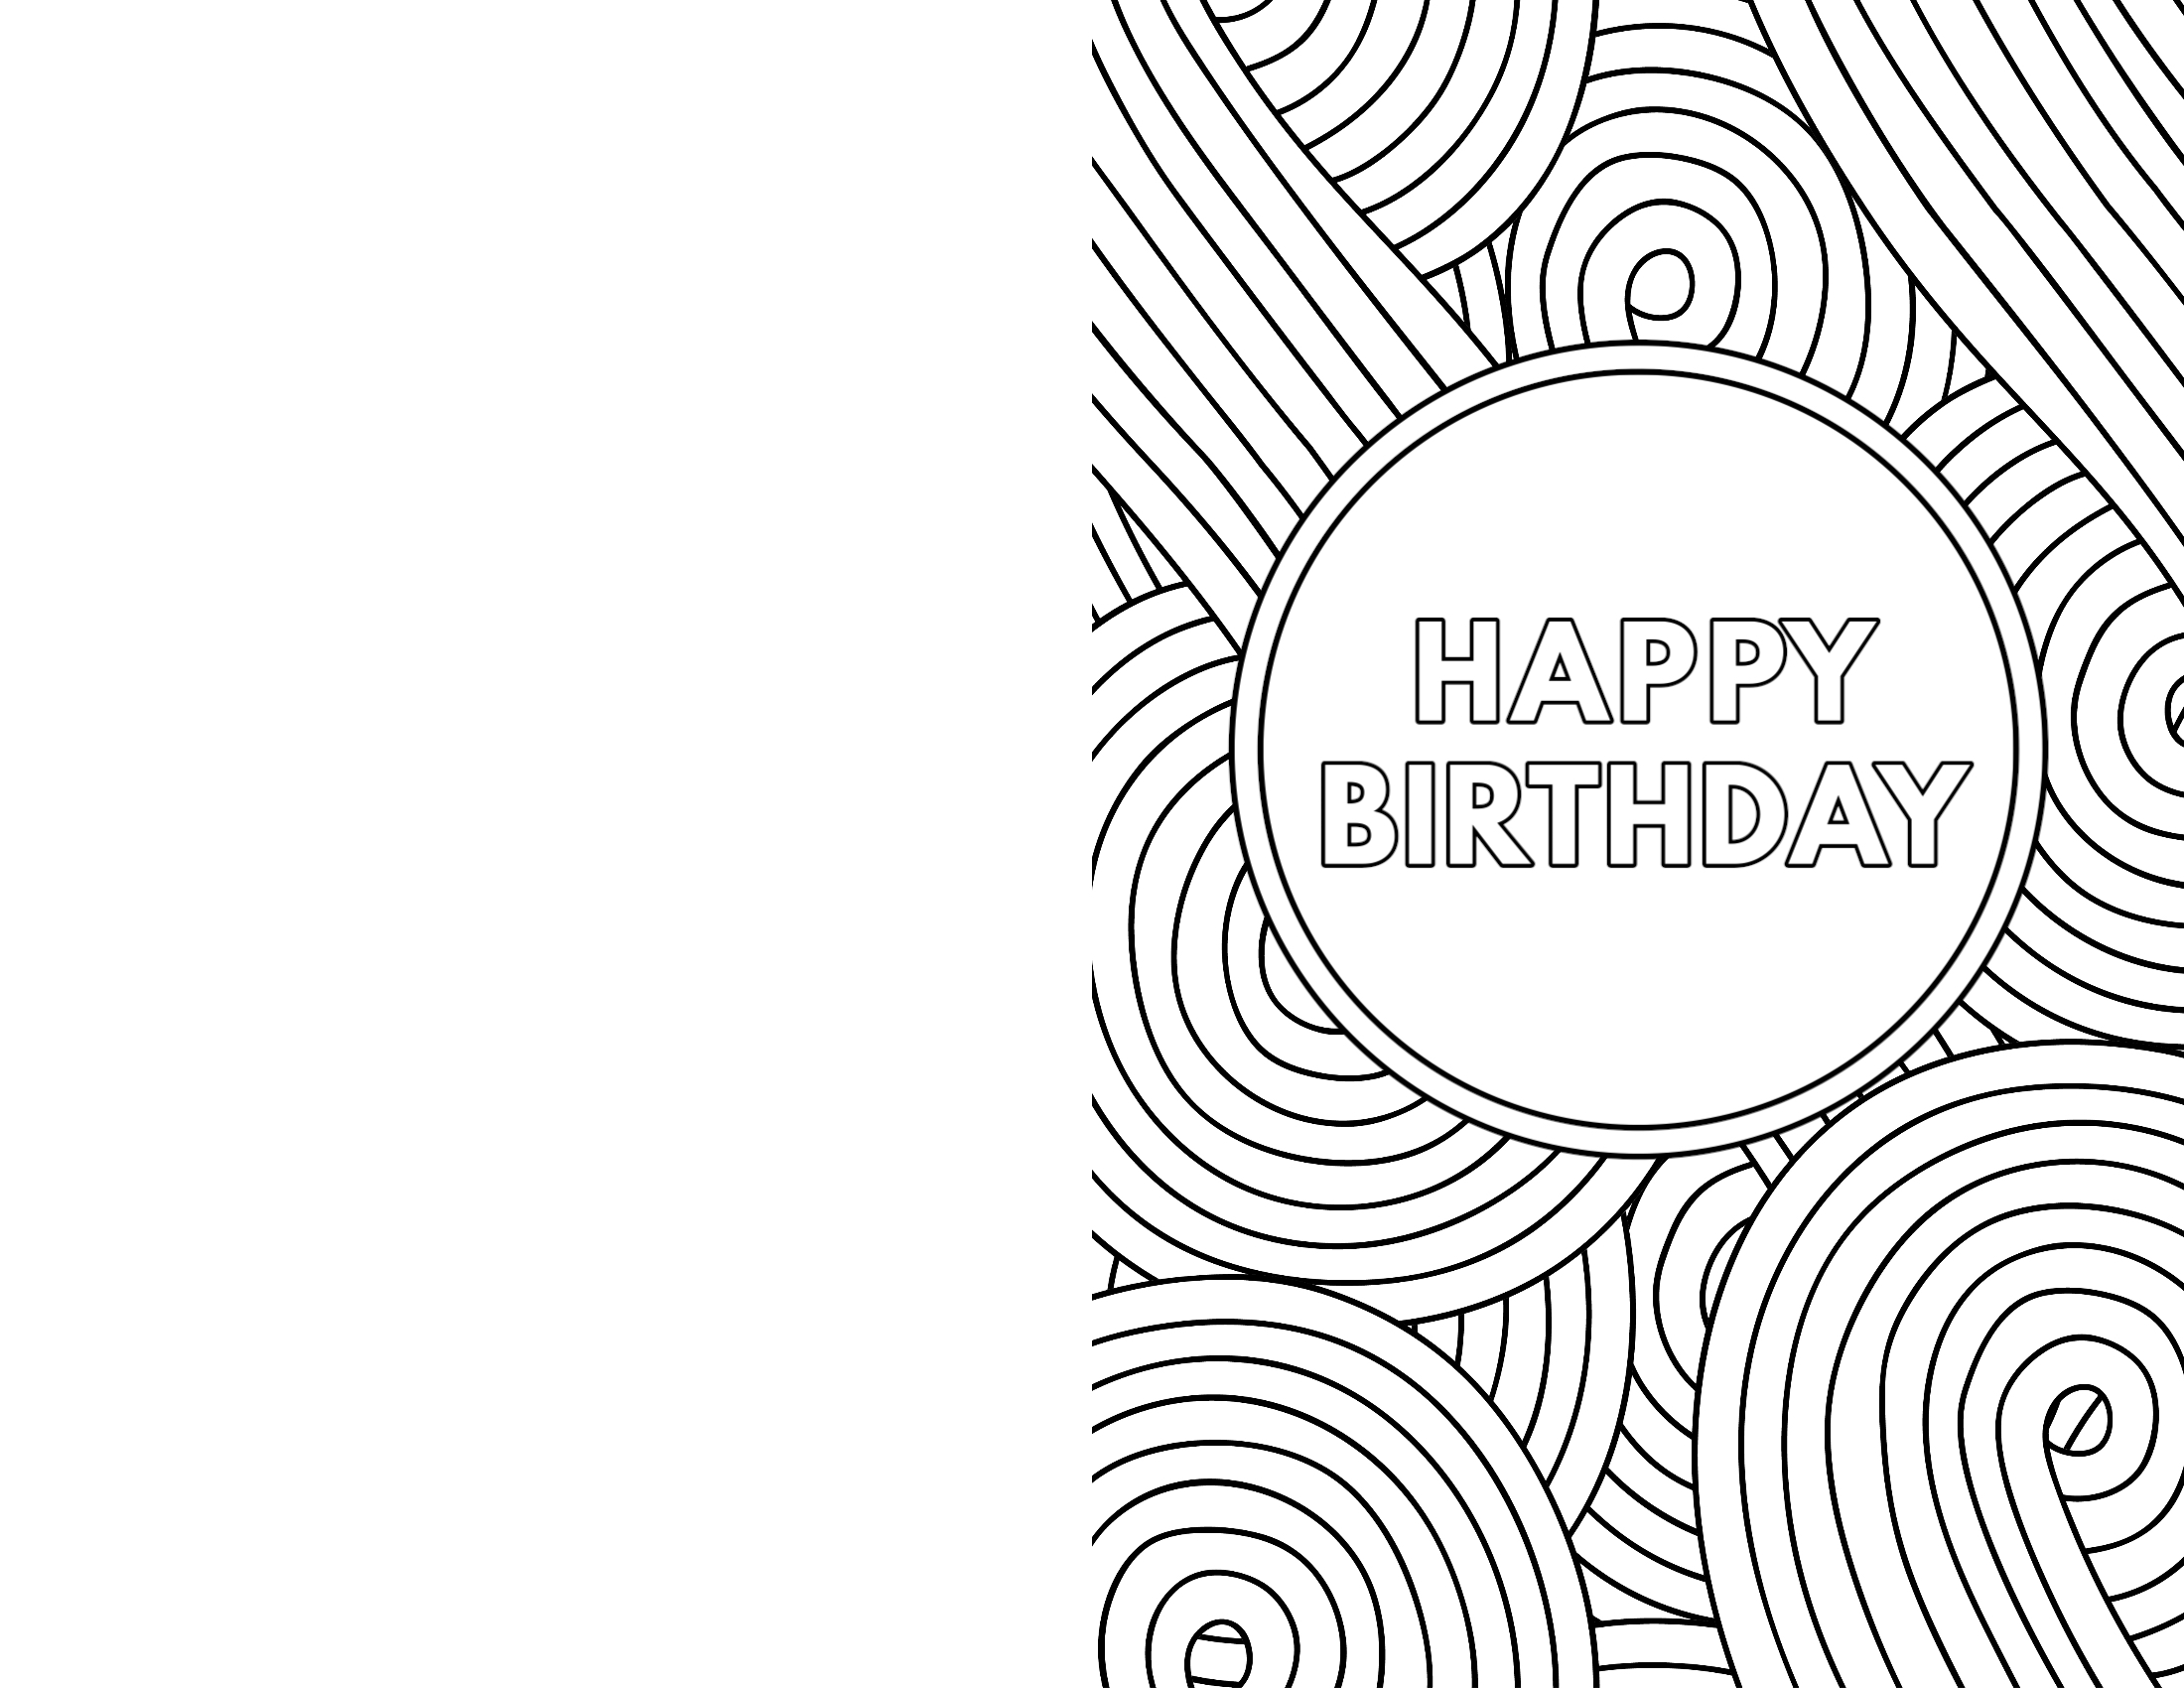 It is an image of Fabulous Foldable Printable Birthday Card